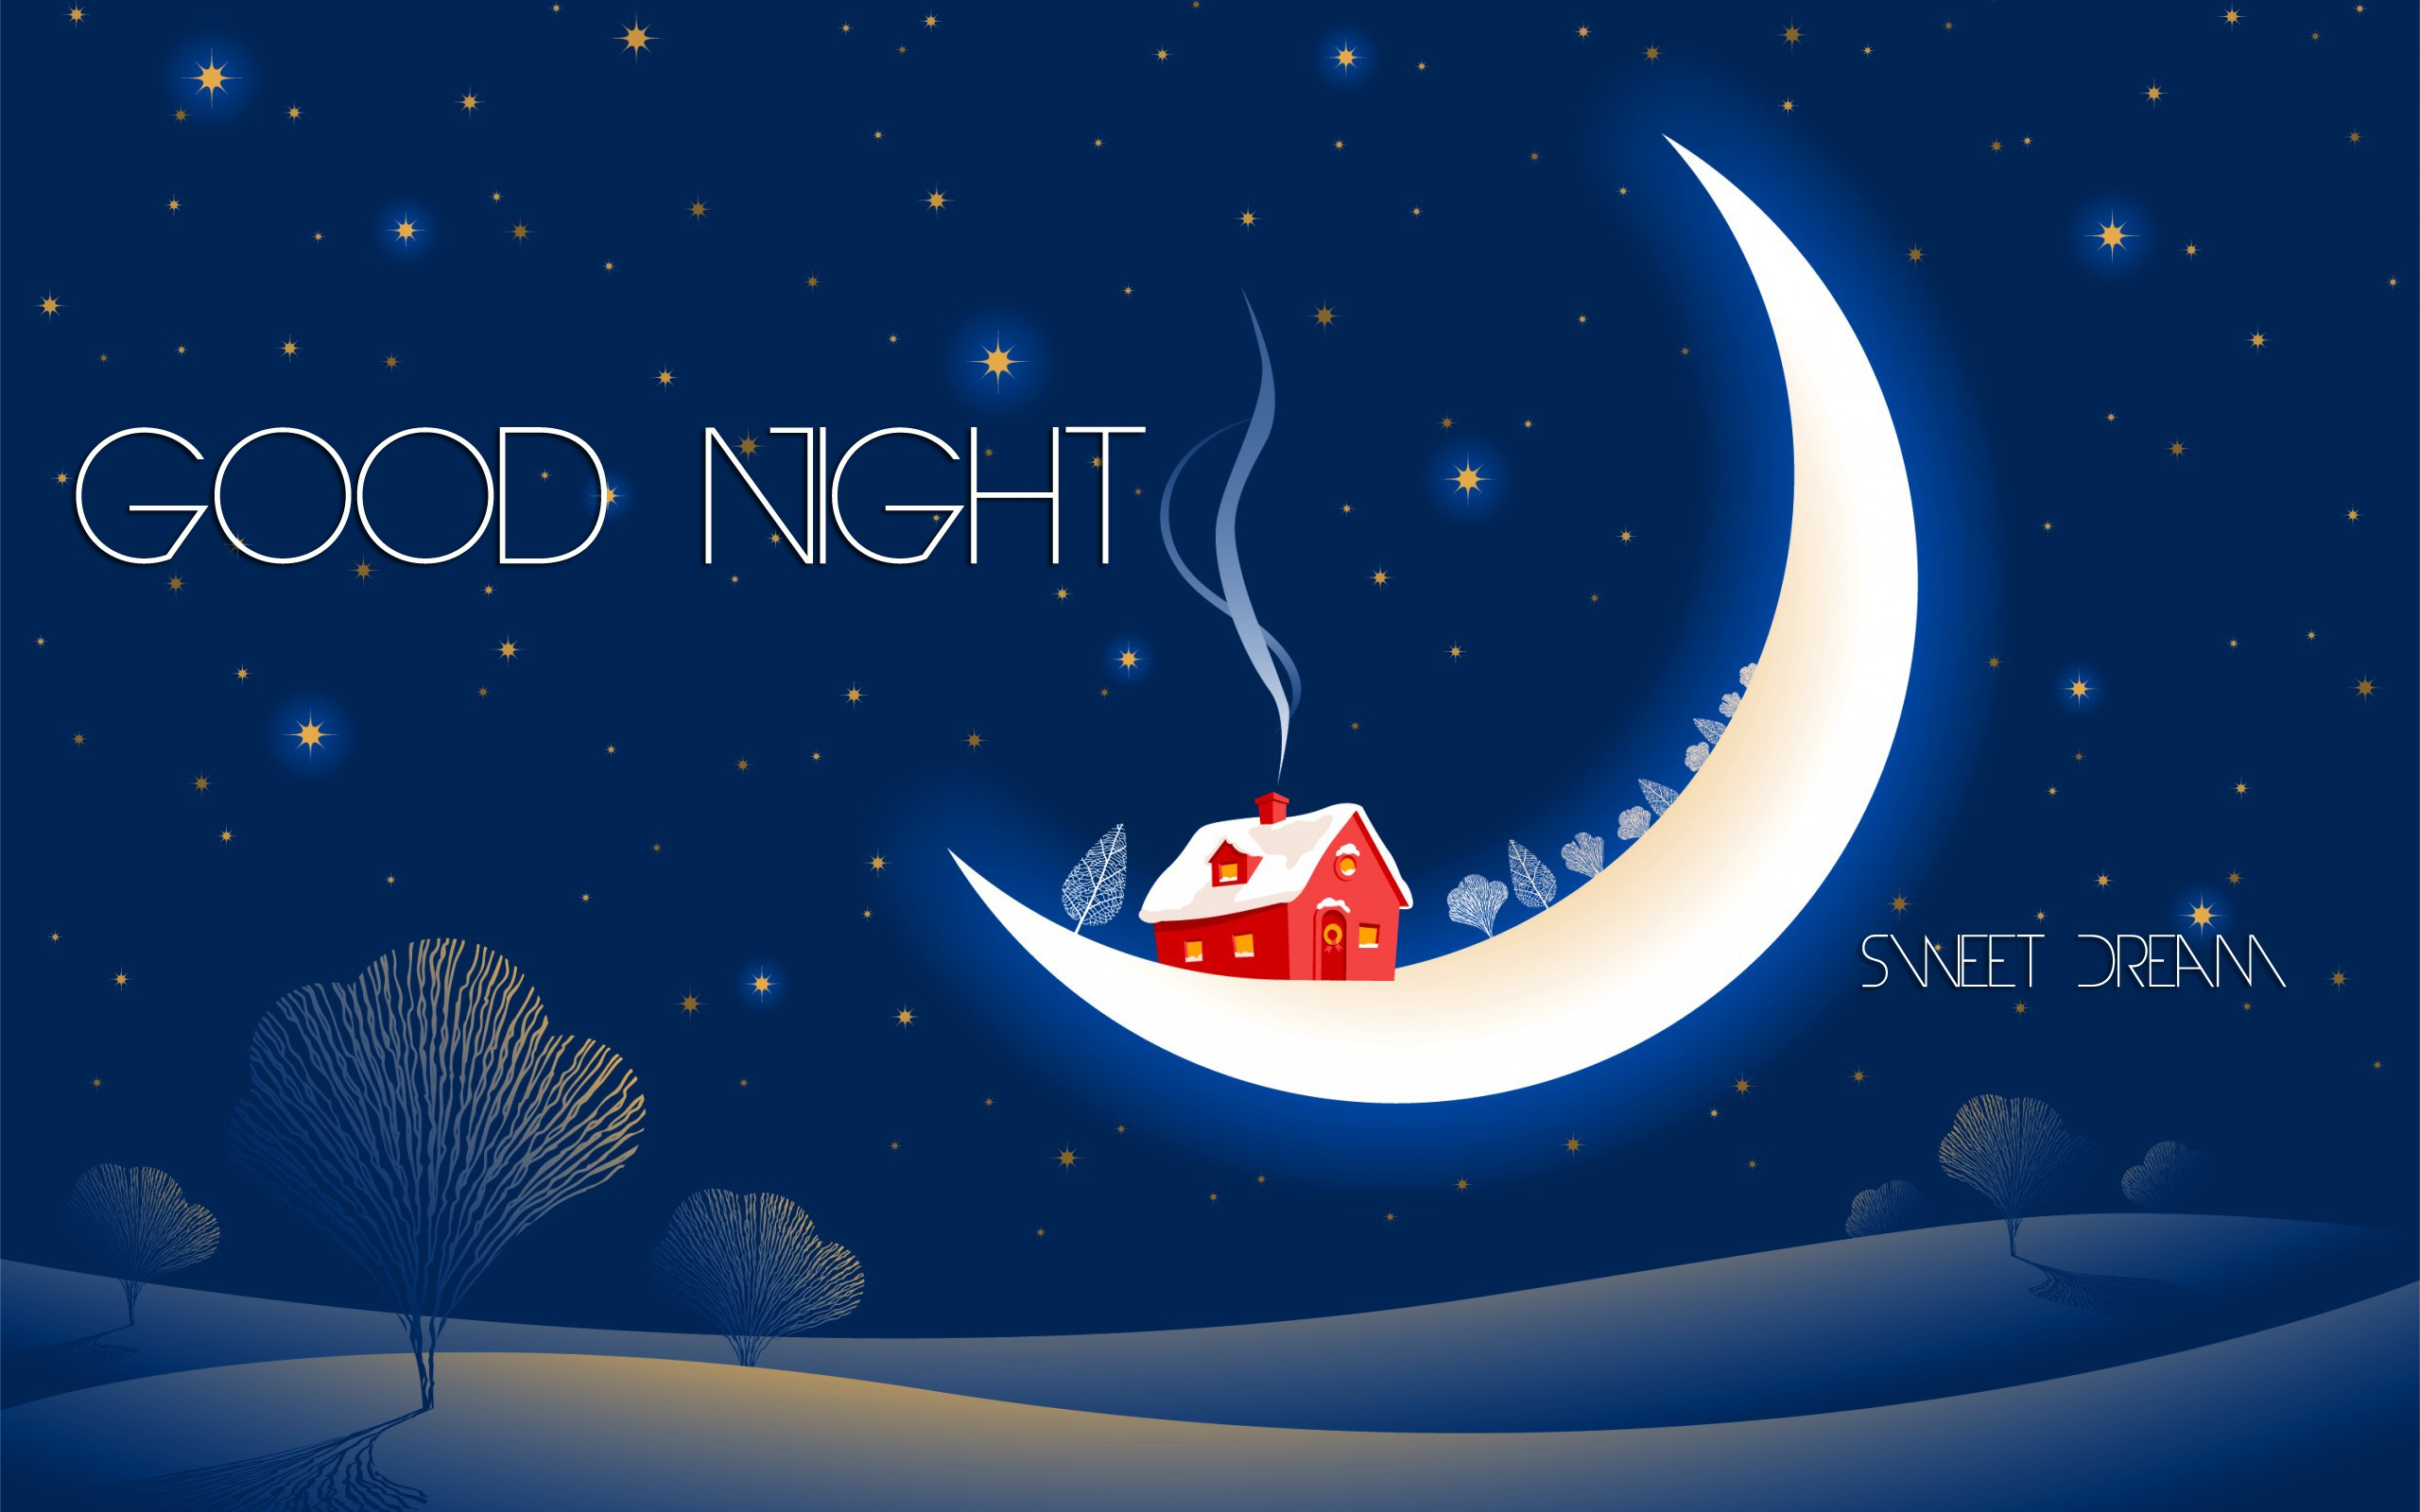 Love Wallpaper Of Good Night : Good Night Wallpapers, Pictures, Images